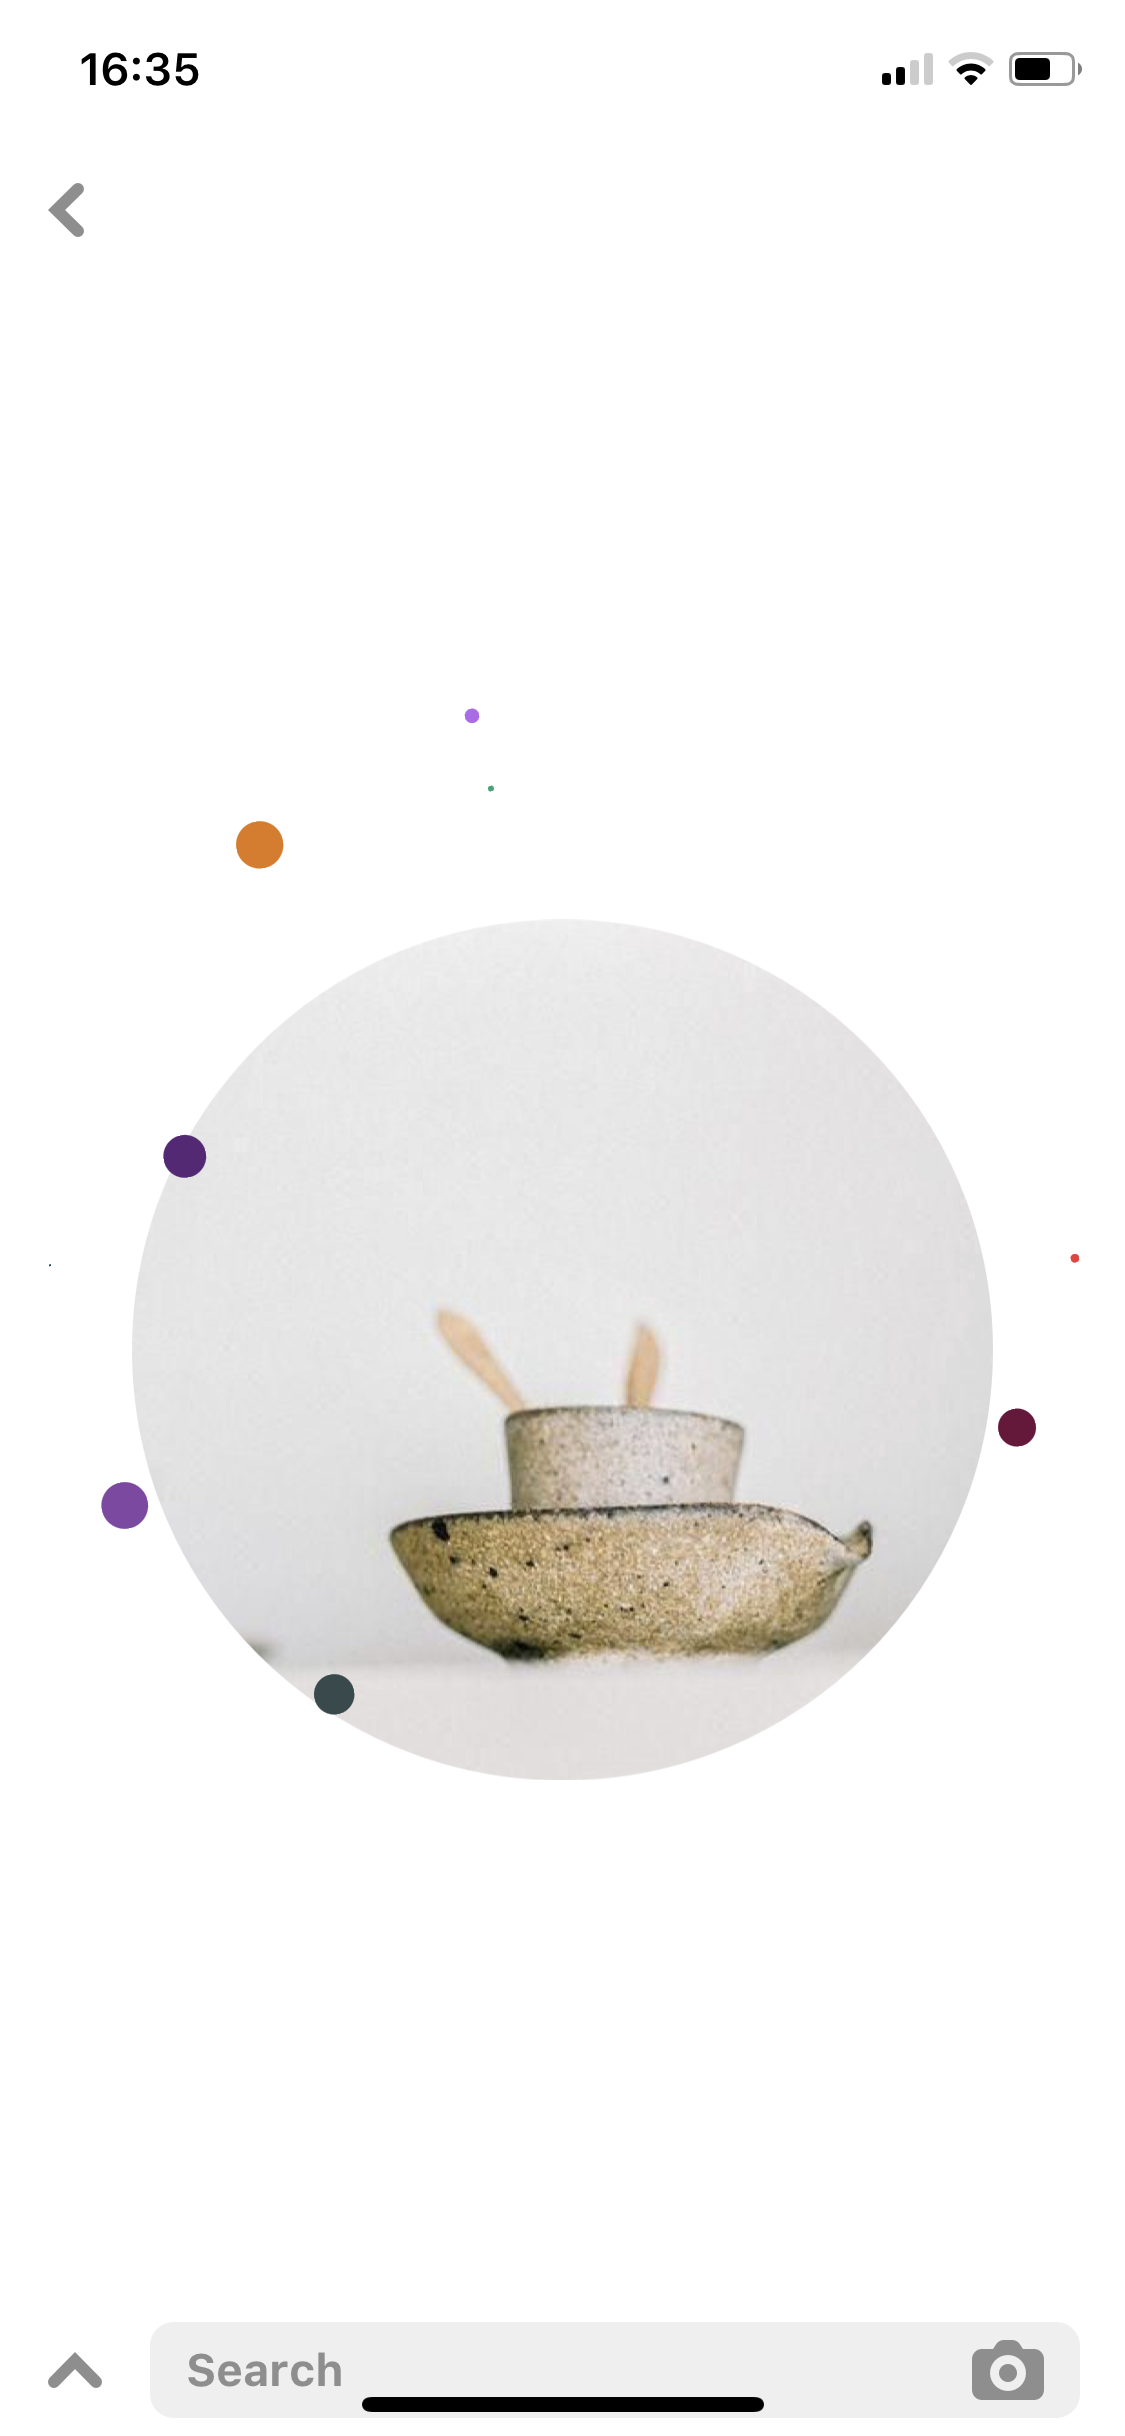 Screenshot of a Pinterest app looking for a photo related to ceramic bowl